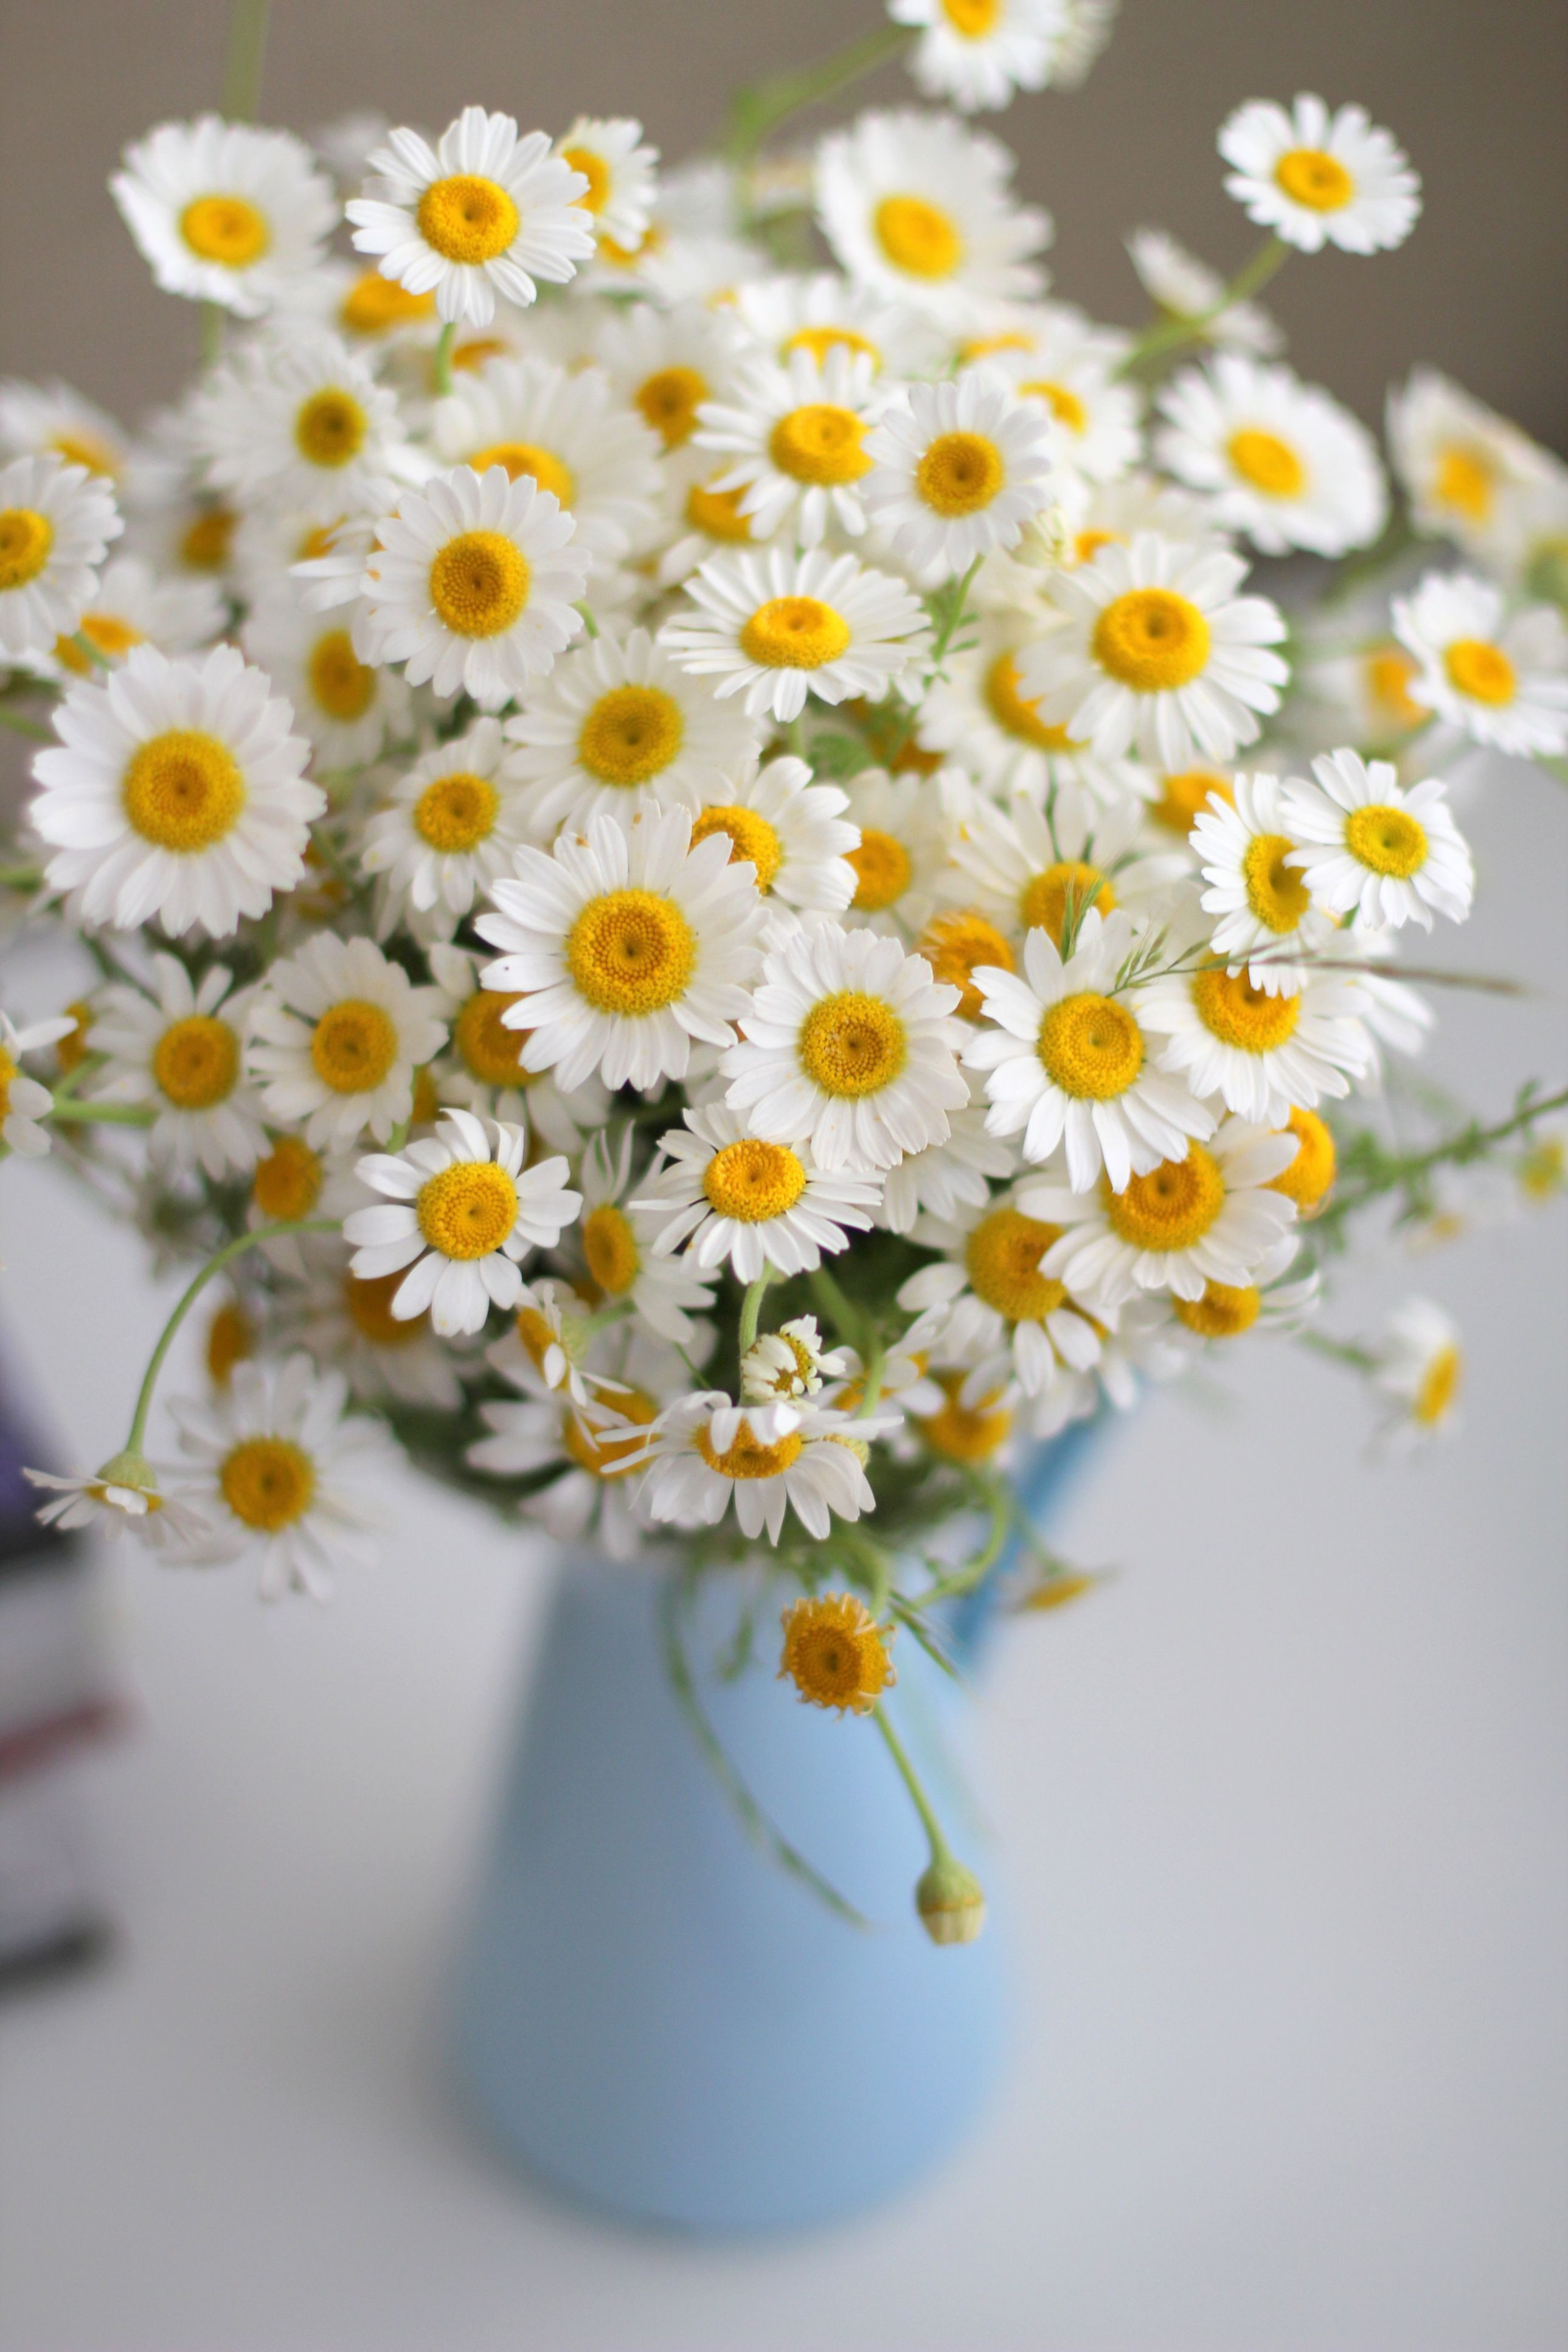 Roadside flowers can look perfectly polished indoors Harvest several dozen daisies and create an overflowing bouquet for the kitchen